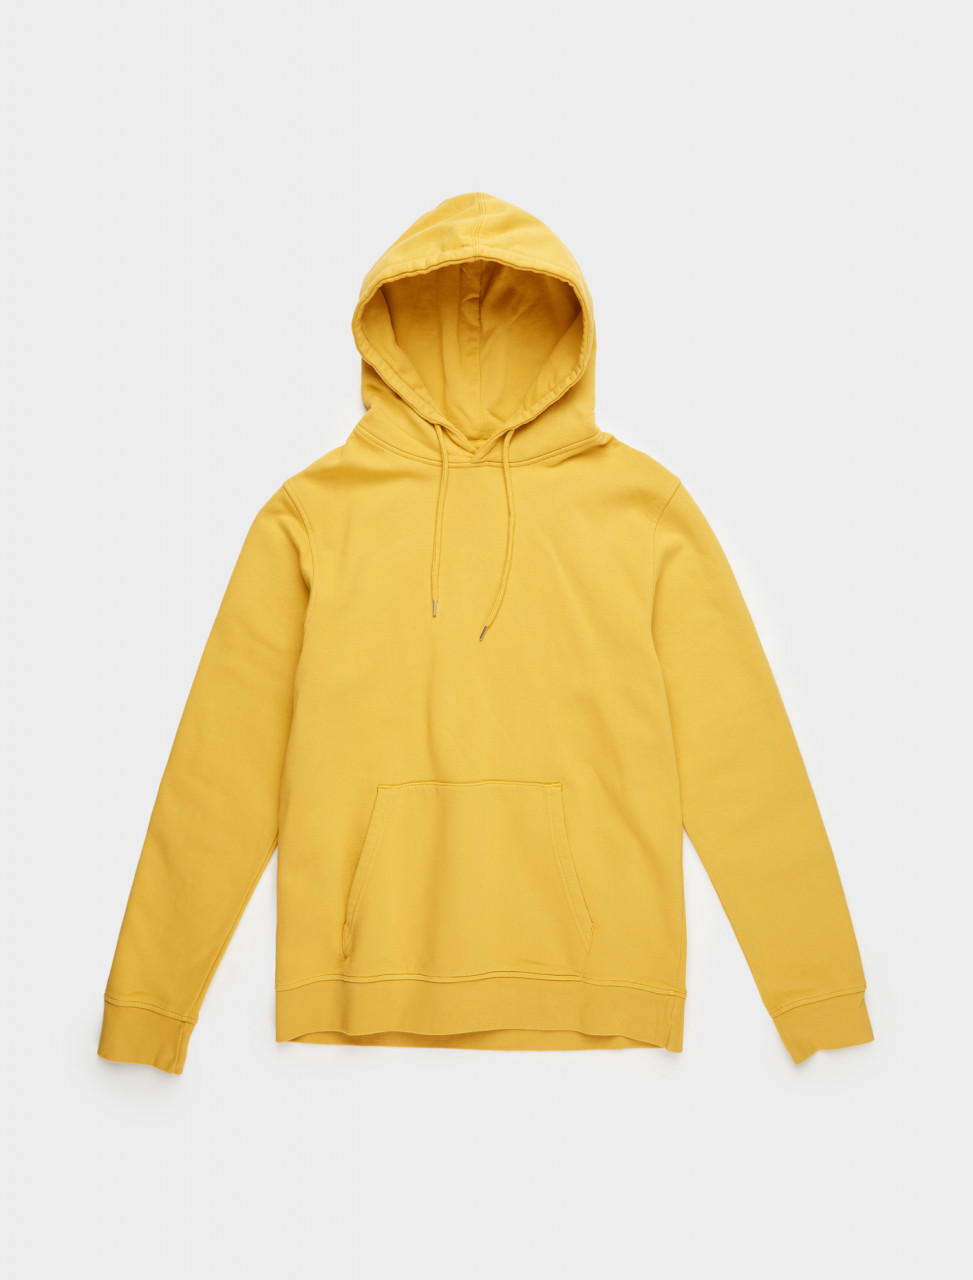 307-CS1006-BY COLORFUL STANDARD CLASSIC ORGANIC HOOD BURNED YELLOW